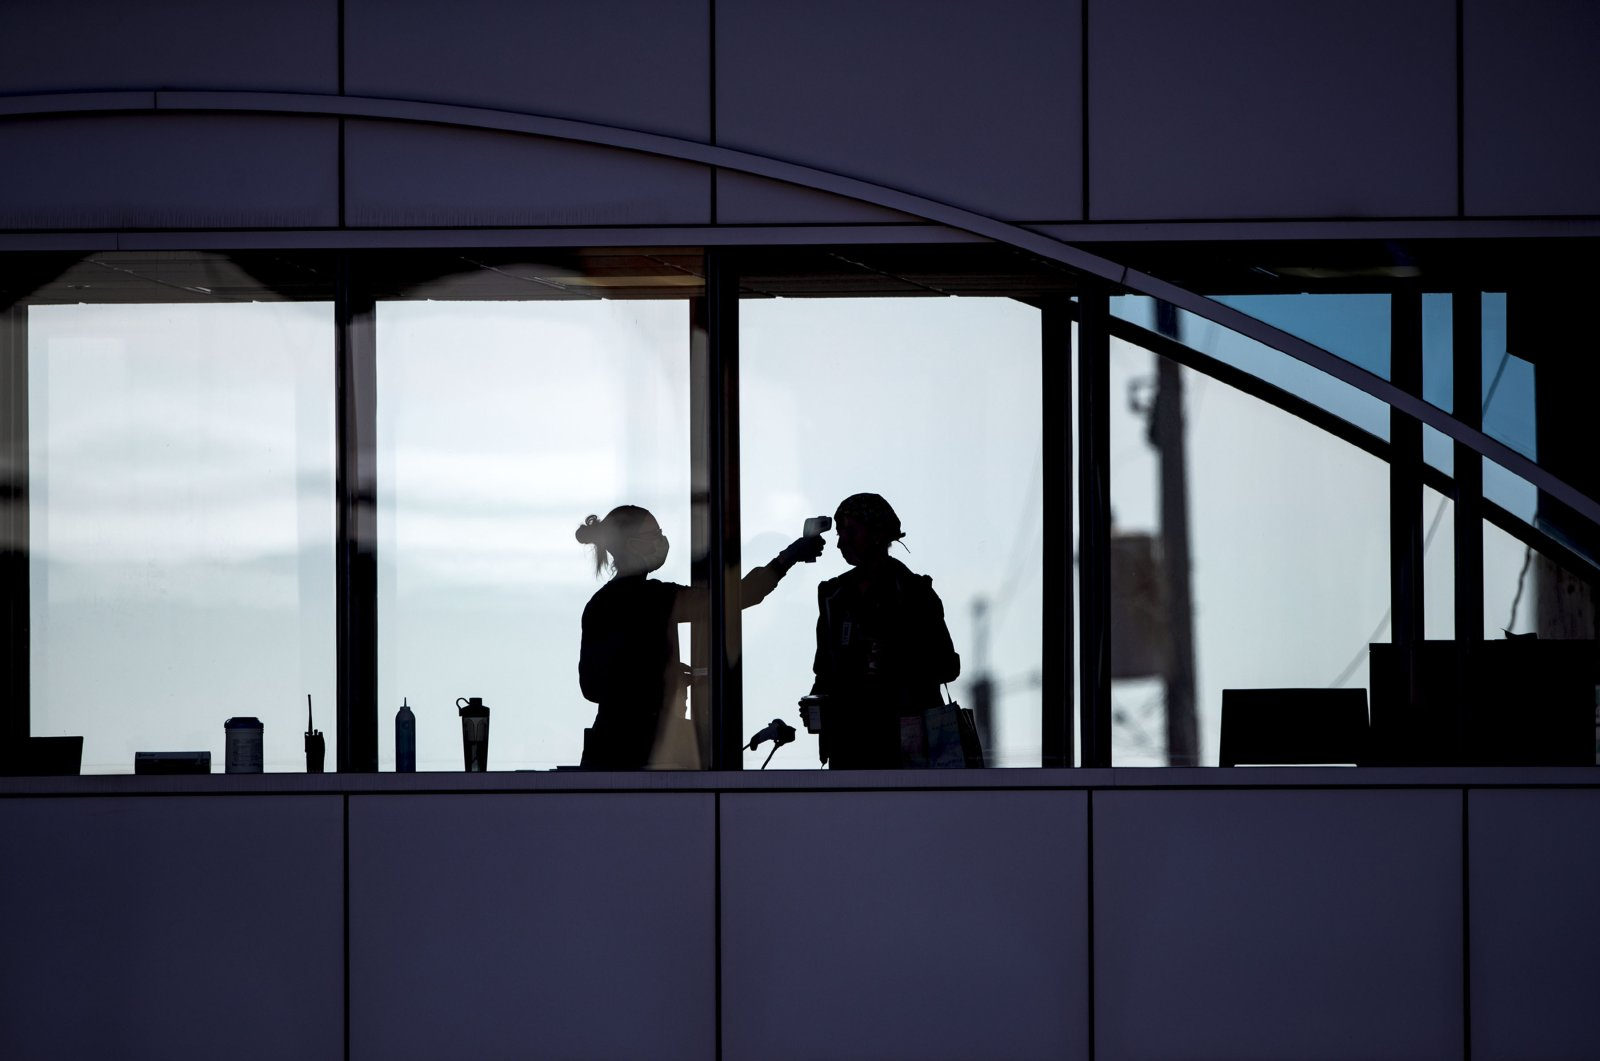 Amid coronavirus concerns, a health care worker takes the temperature of a visitor at Essentia Health who was crossing over a skywalk bridge from the adjoining parking deck in Duluth, Minnesota, April 10, 2020. (AP Photo)